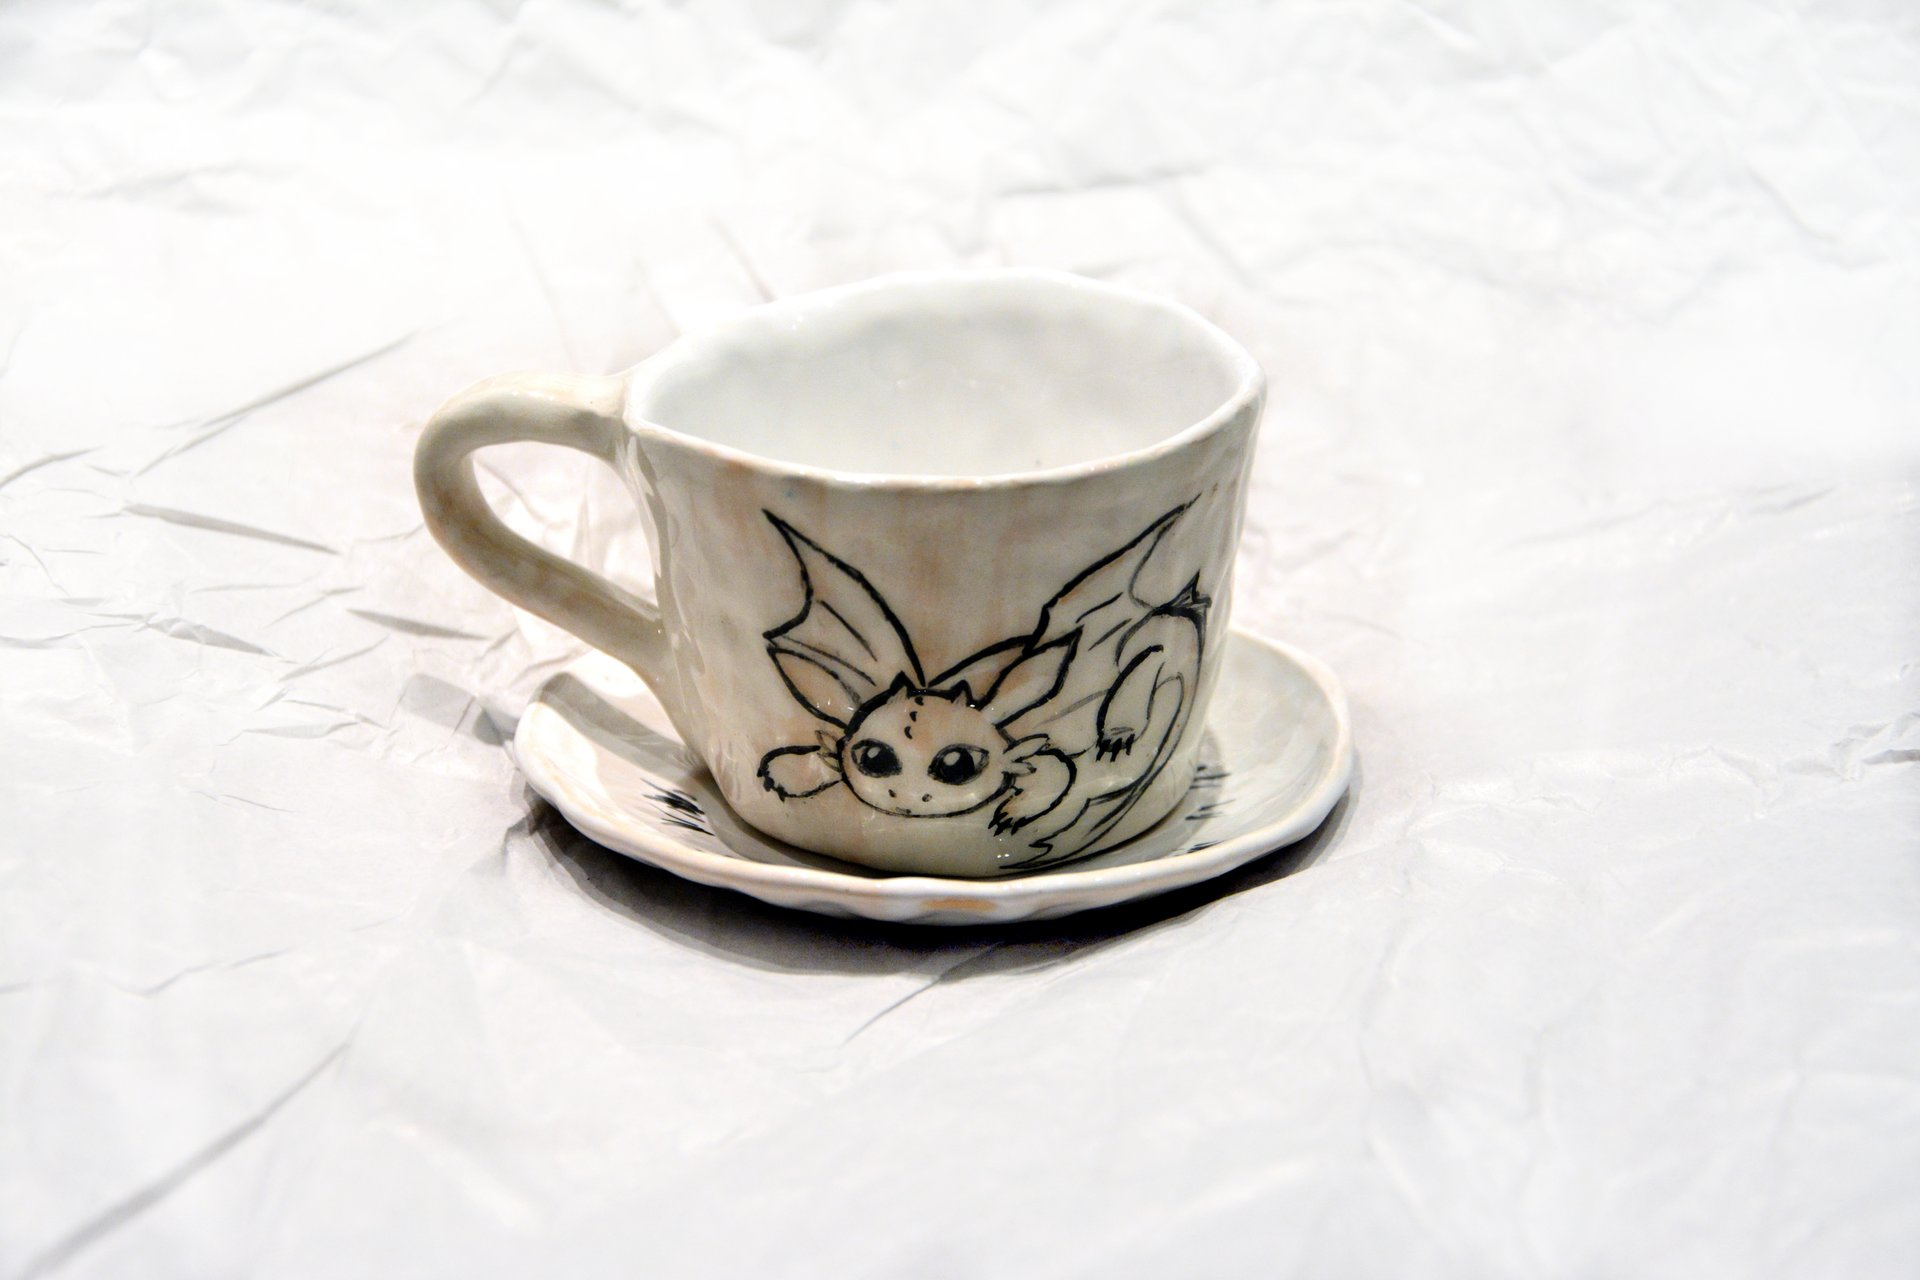 A cup with the Toothless - Cups, glasses, mugs, 80 ml, photo 2 of 3.